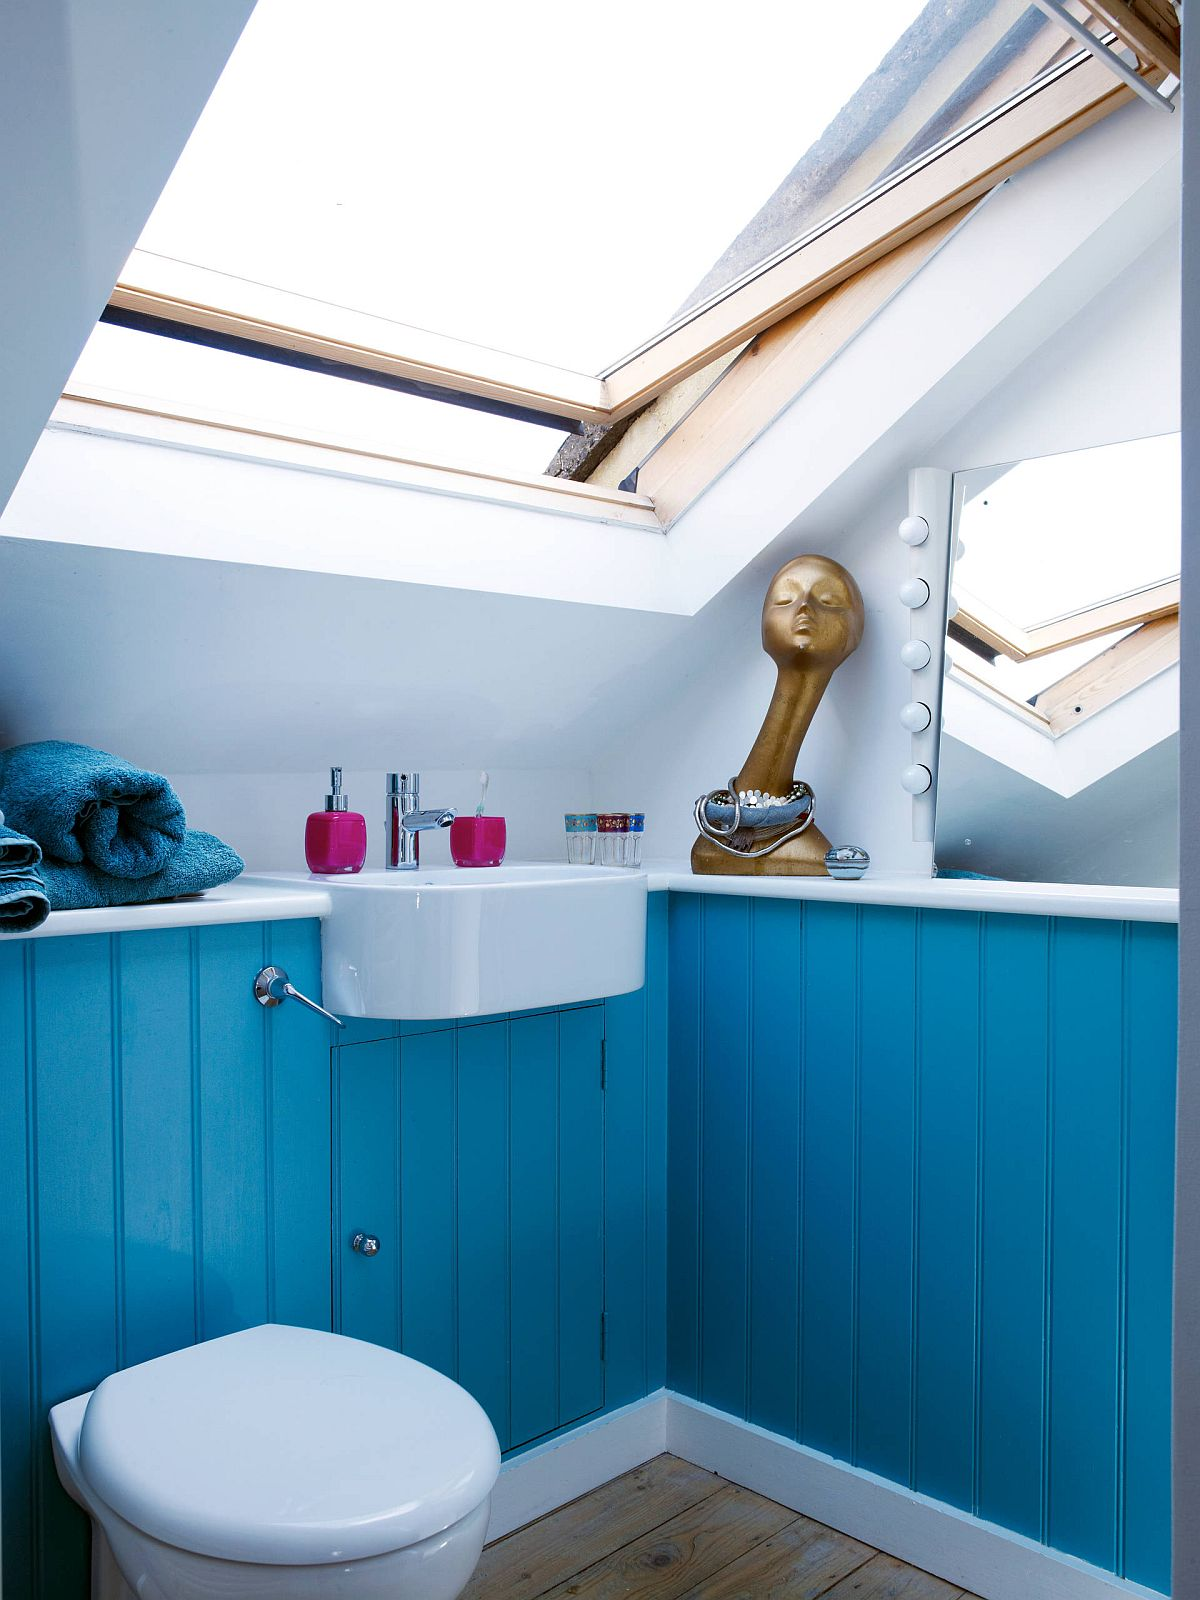 Small attic bathroom in lovely blue and white with plenty of natural light